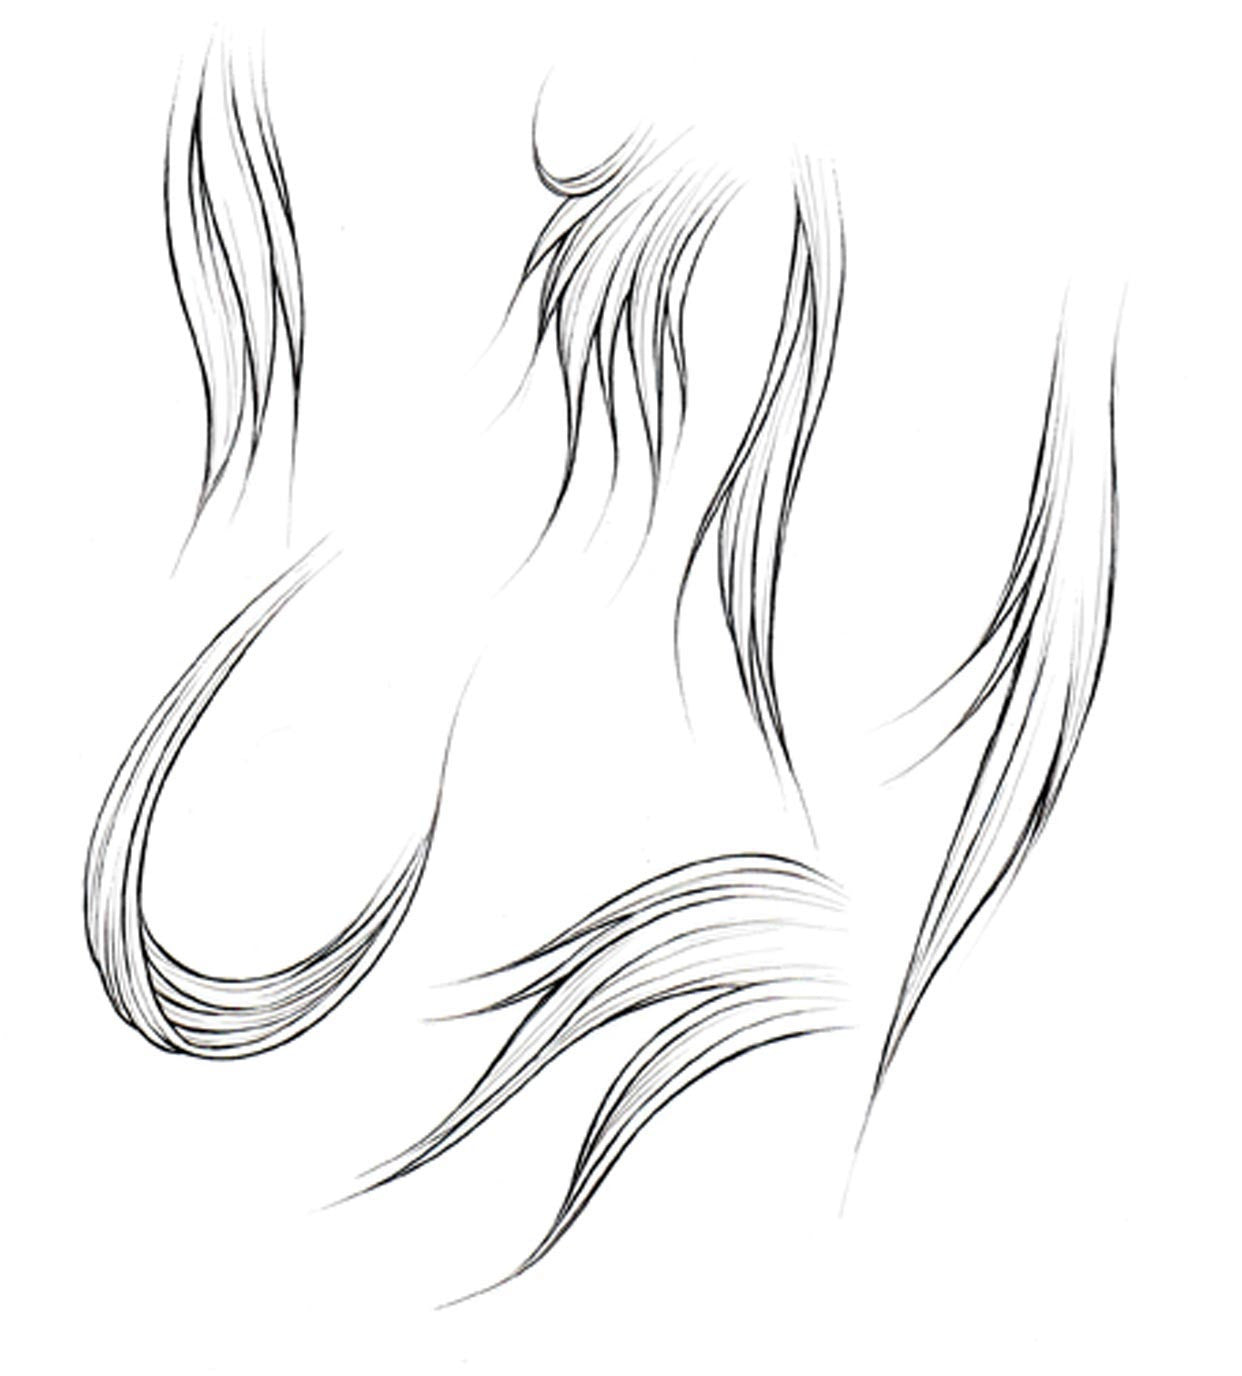 How To Draw Hair Part 1 Manga University Campus Store